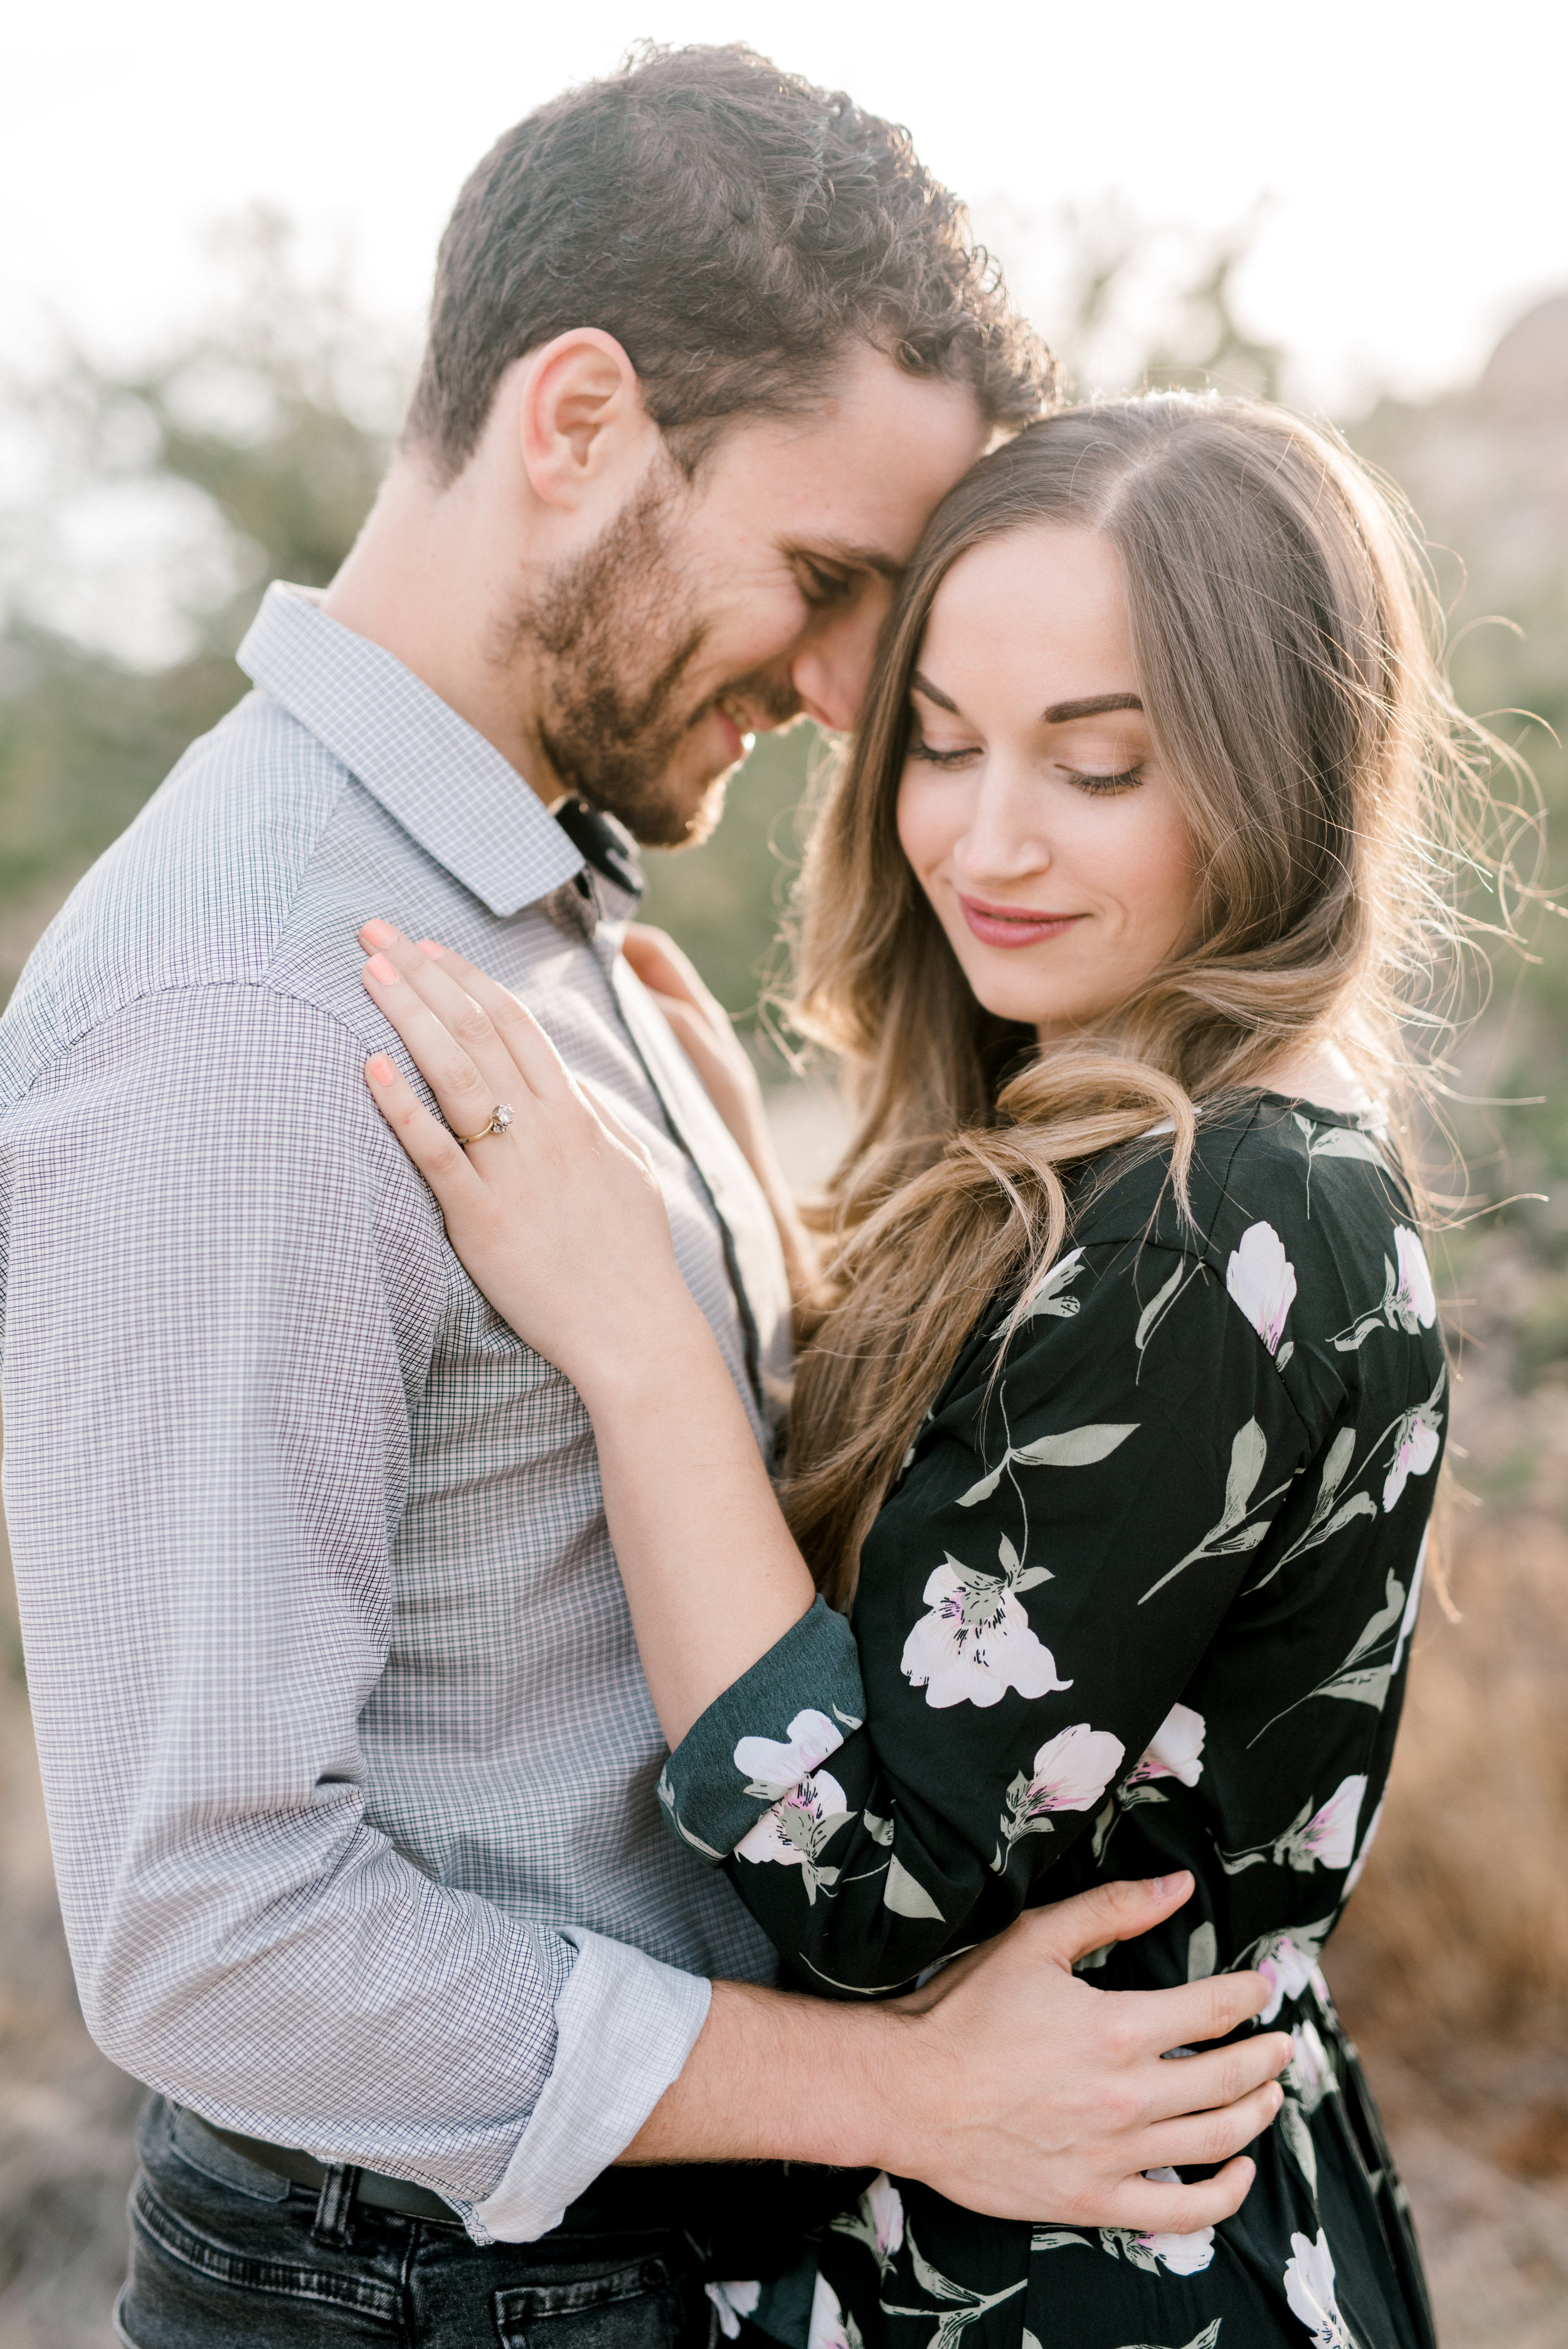 Sunset looks amazing on these two for their free-spirited desert engagement session in Joshue Tree